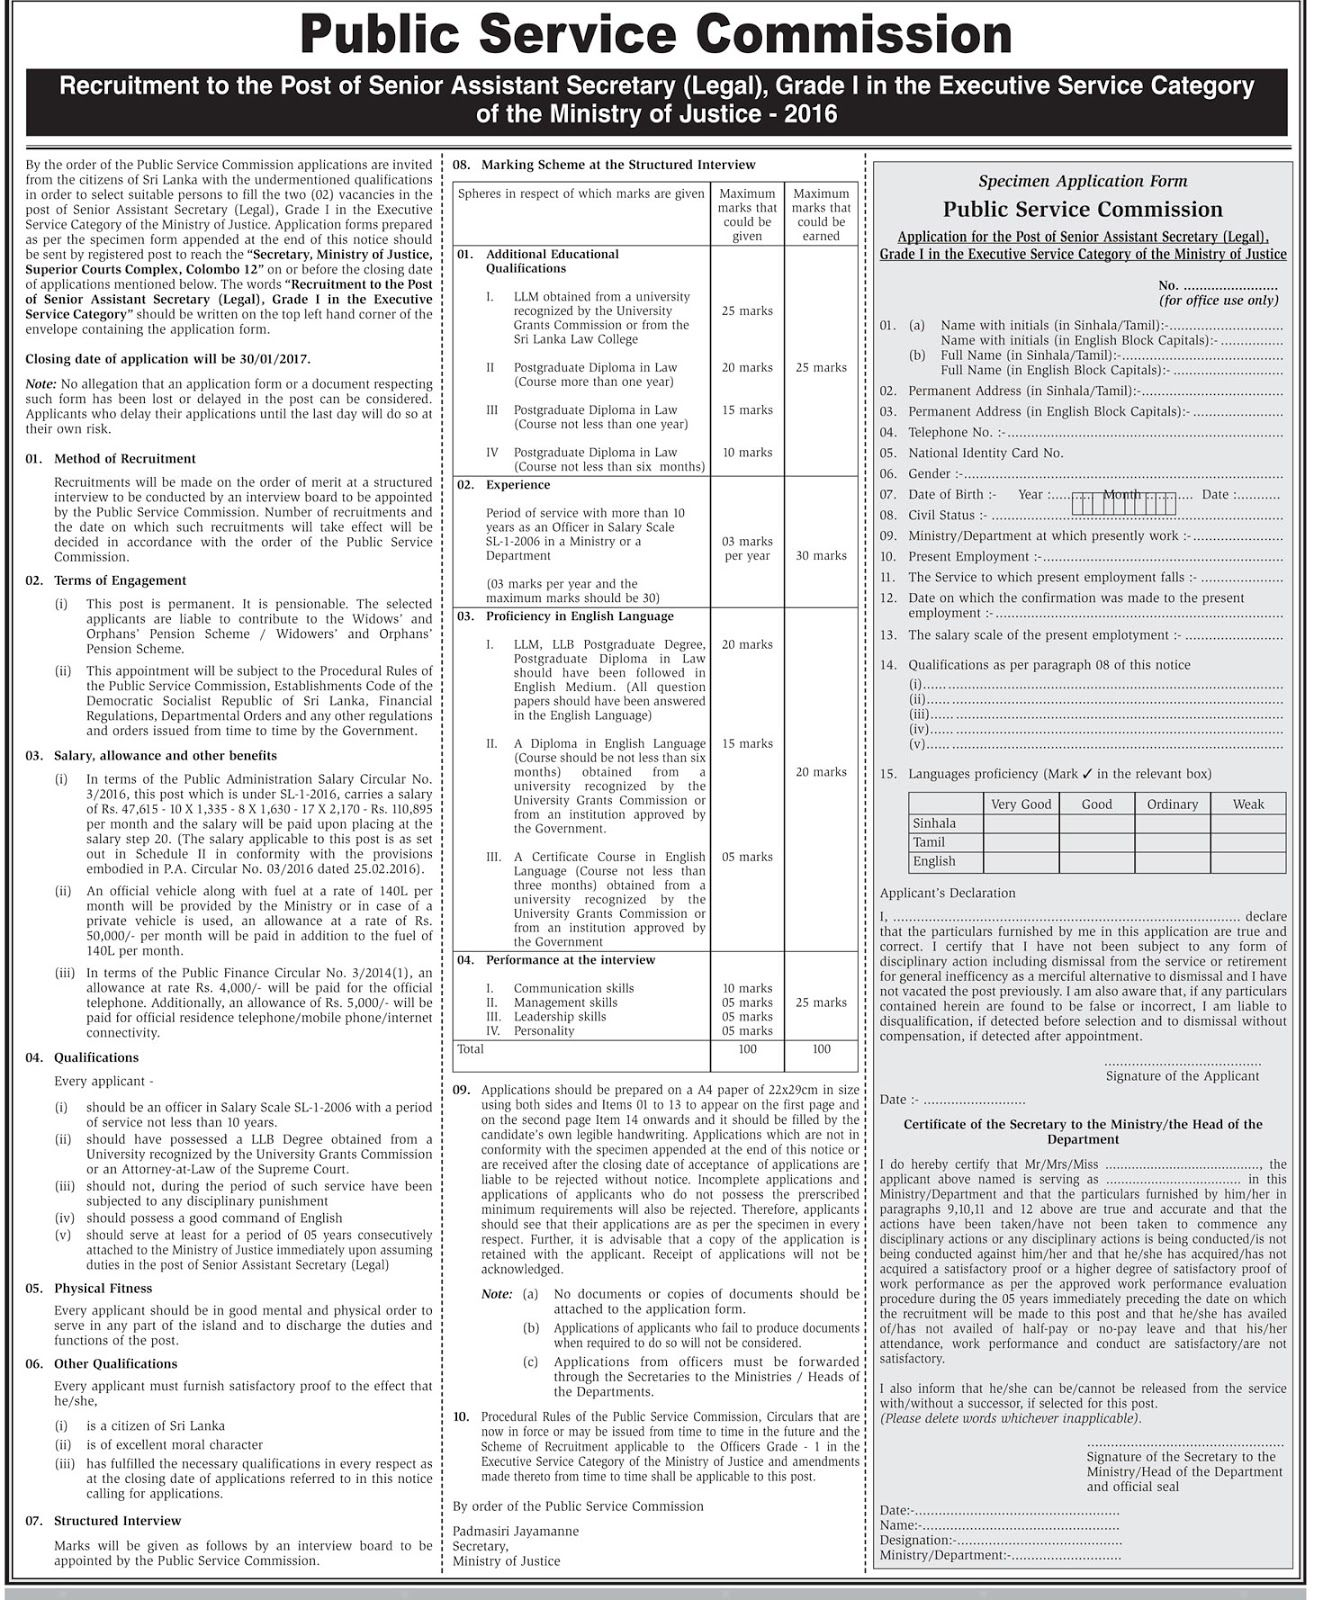 Sri Lankan Government Job Vacancies At Ministry Of Justice For